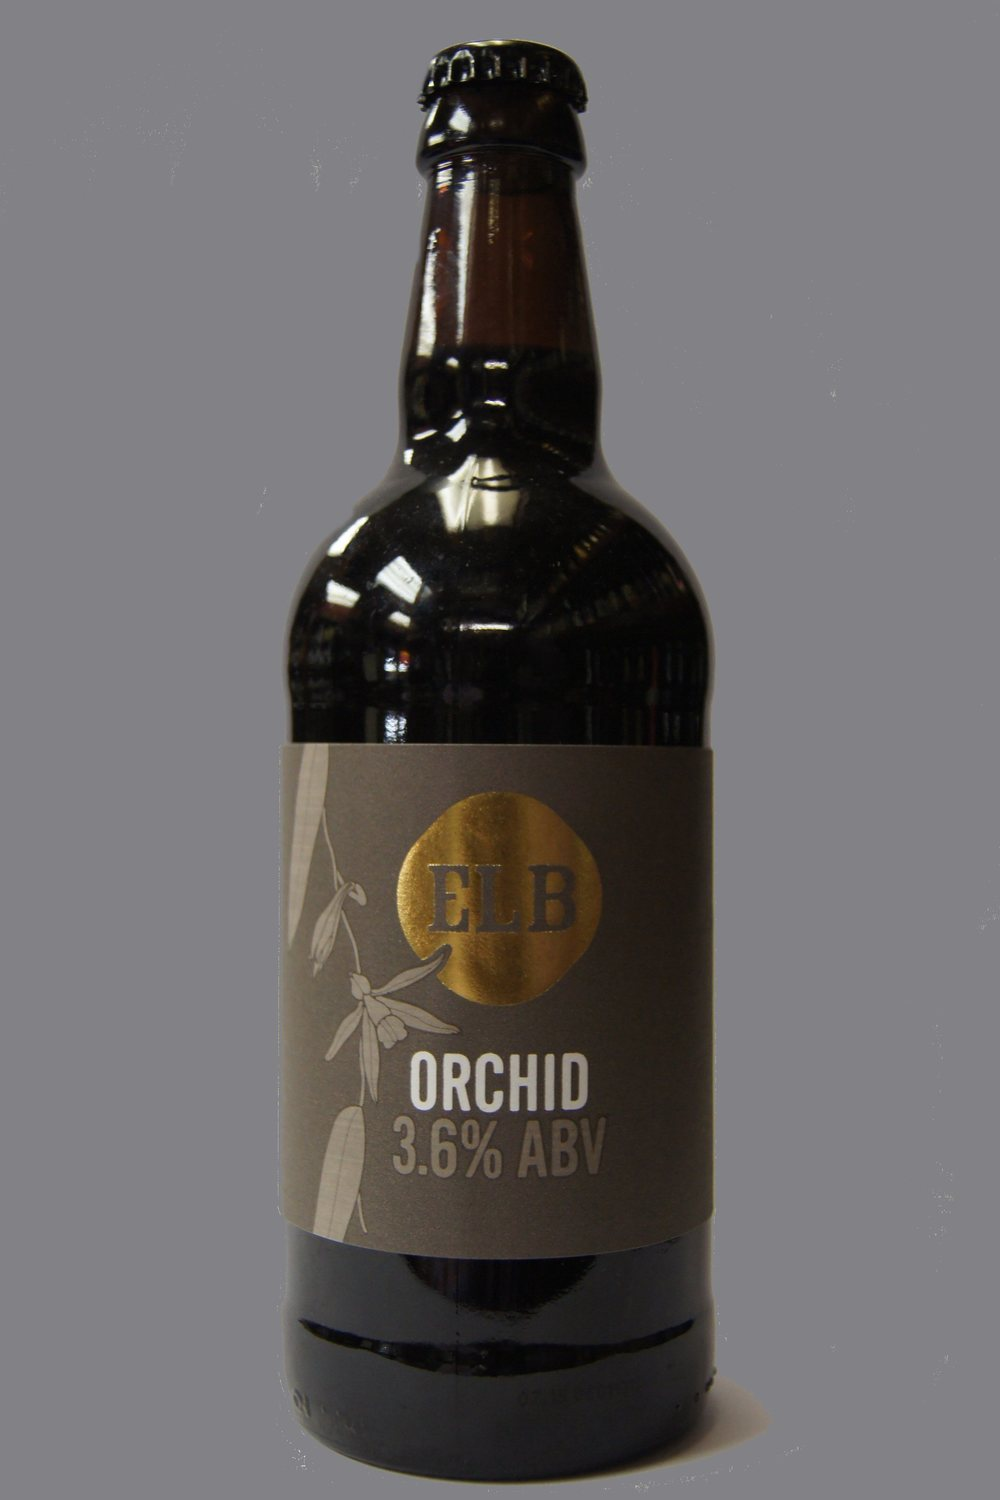 EAST LONDON BREWERY-Orchid.jpg